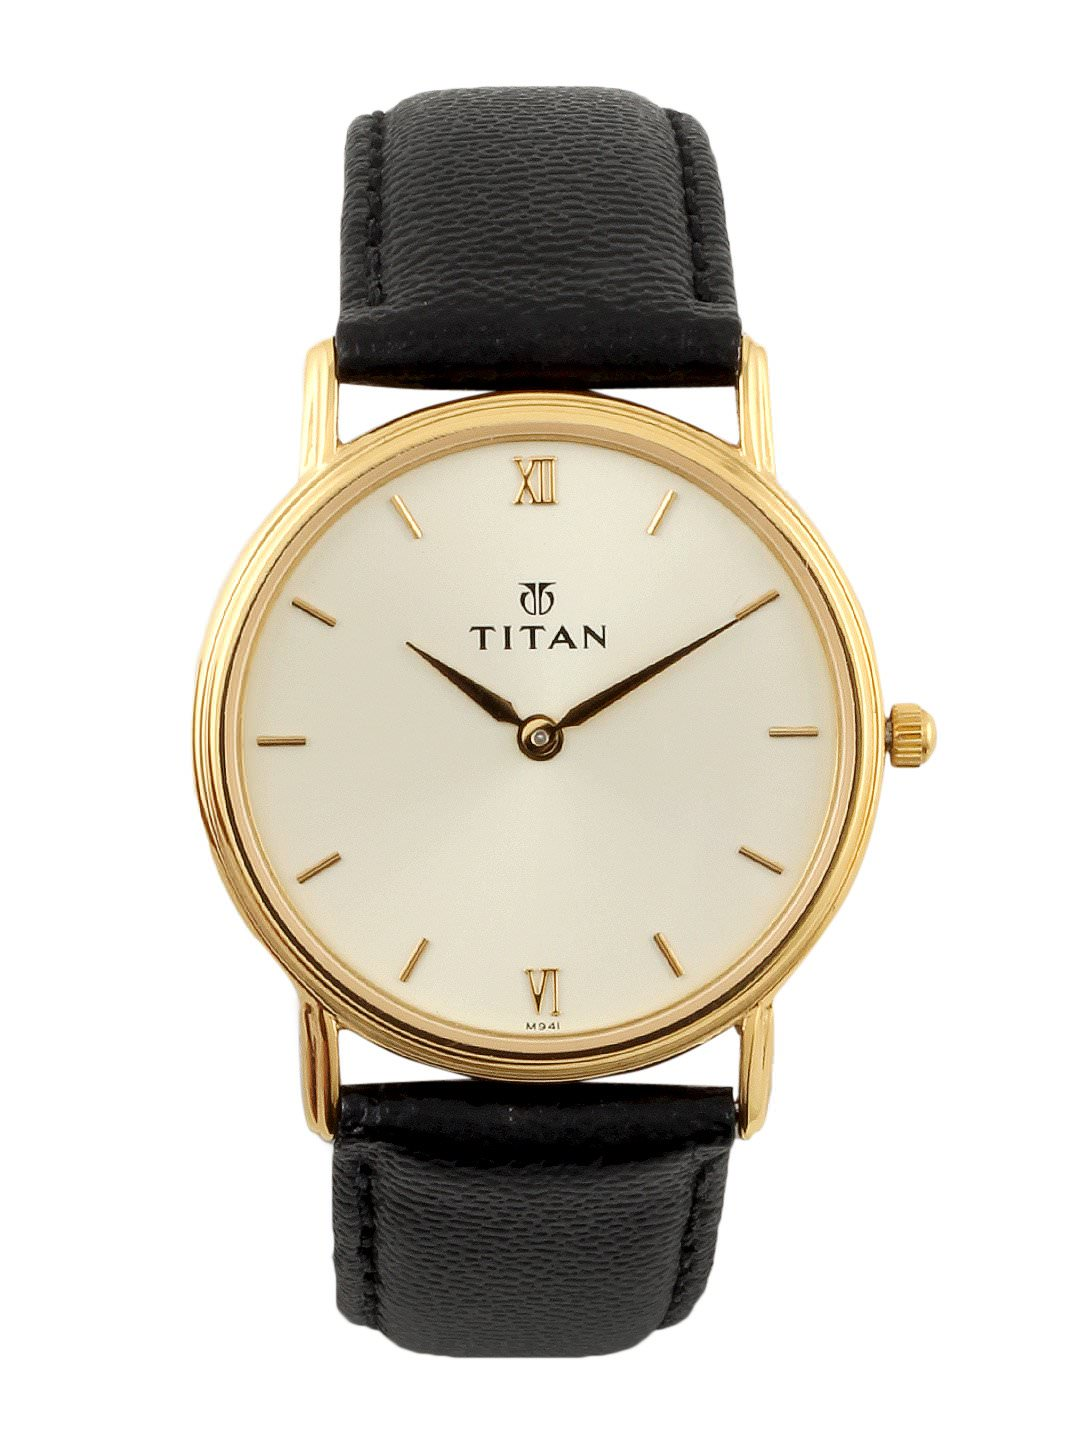 Titan Gold Watches For Man